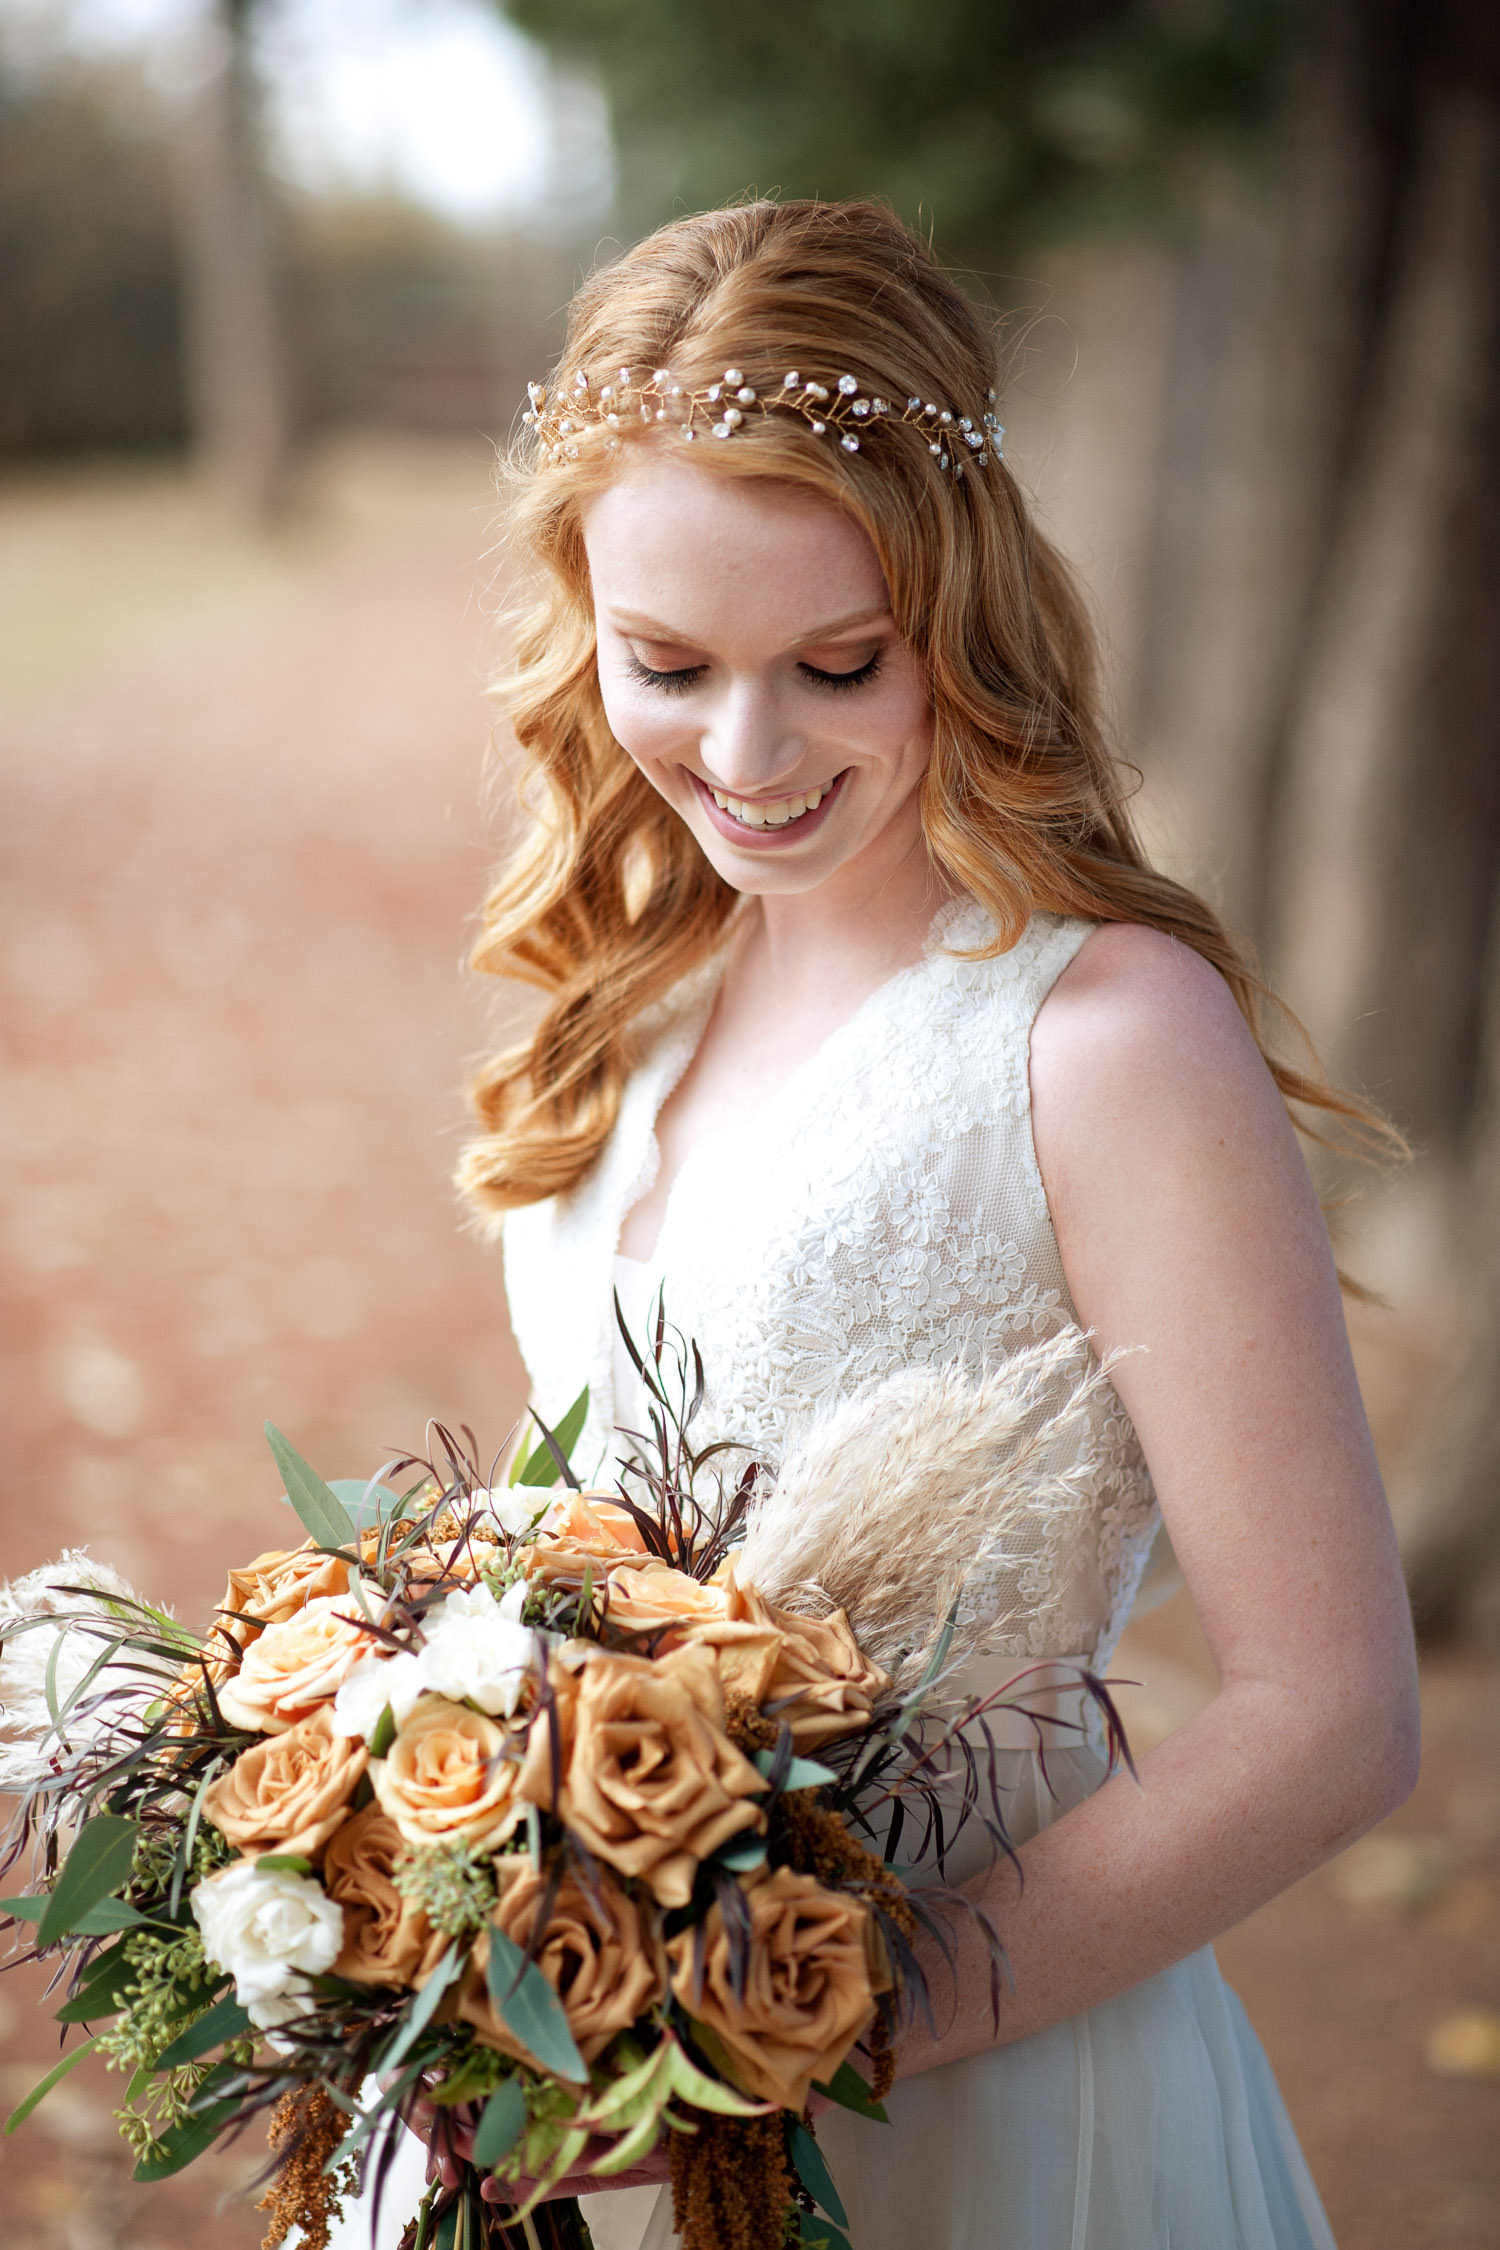 fall bridal bouquet ideas captured by Tara Whittaker Photography